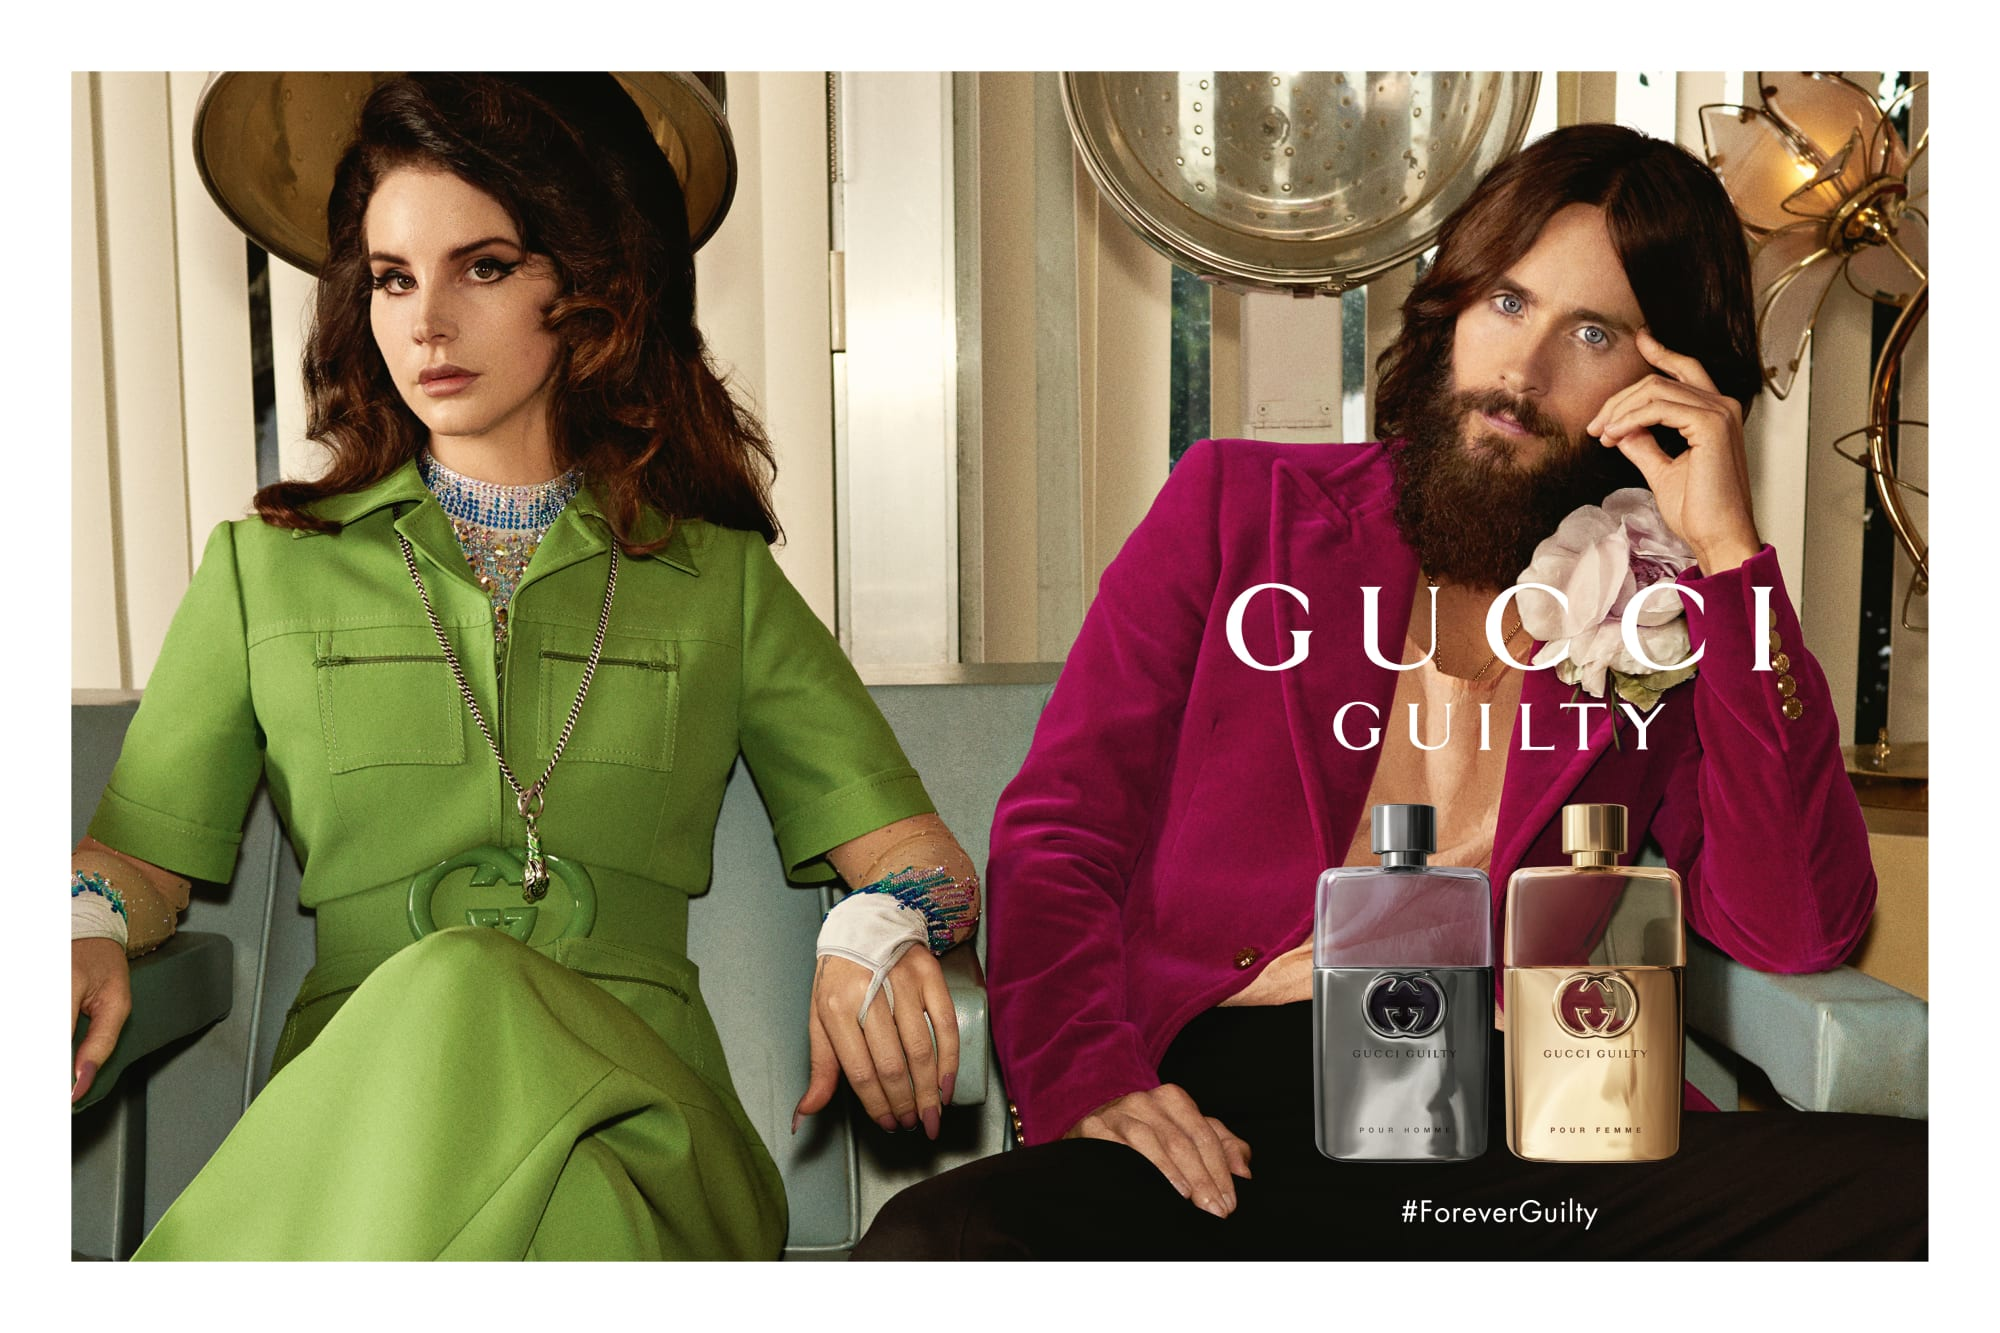 Sinais_ODES_camp_gucci-guilty-campaign-lana-del-rey-jared-leto